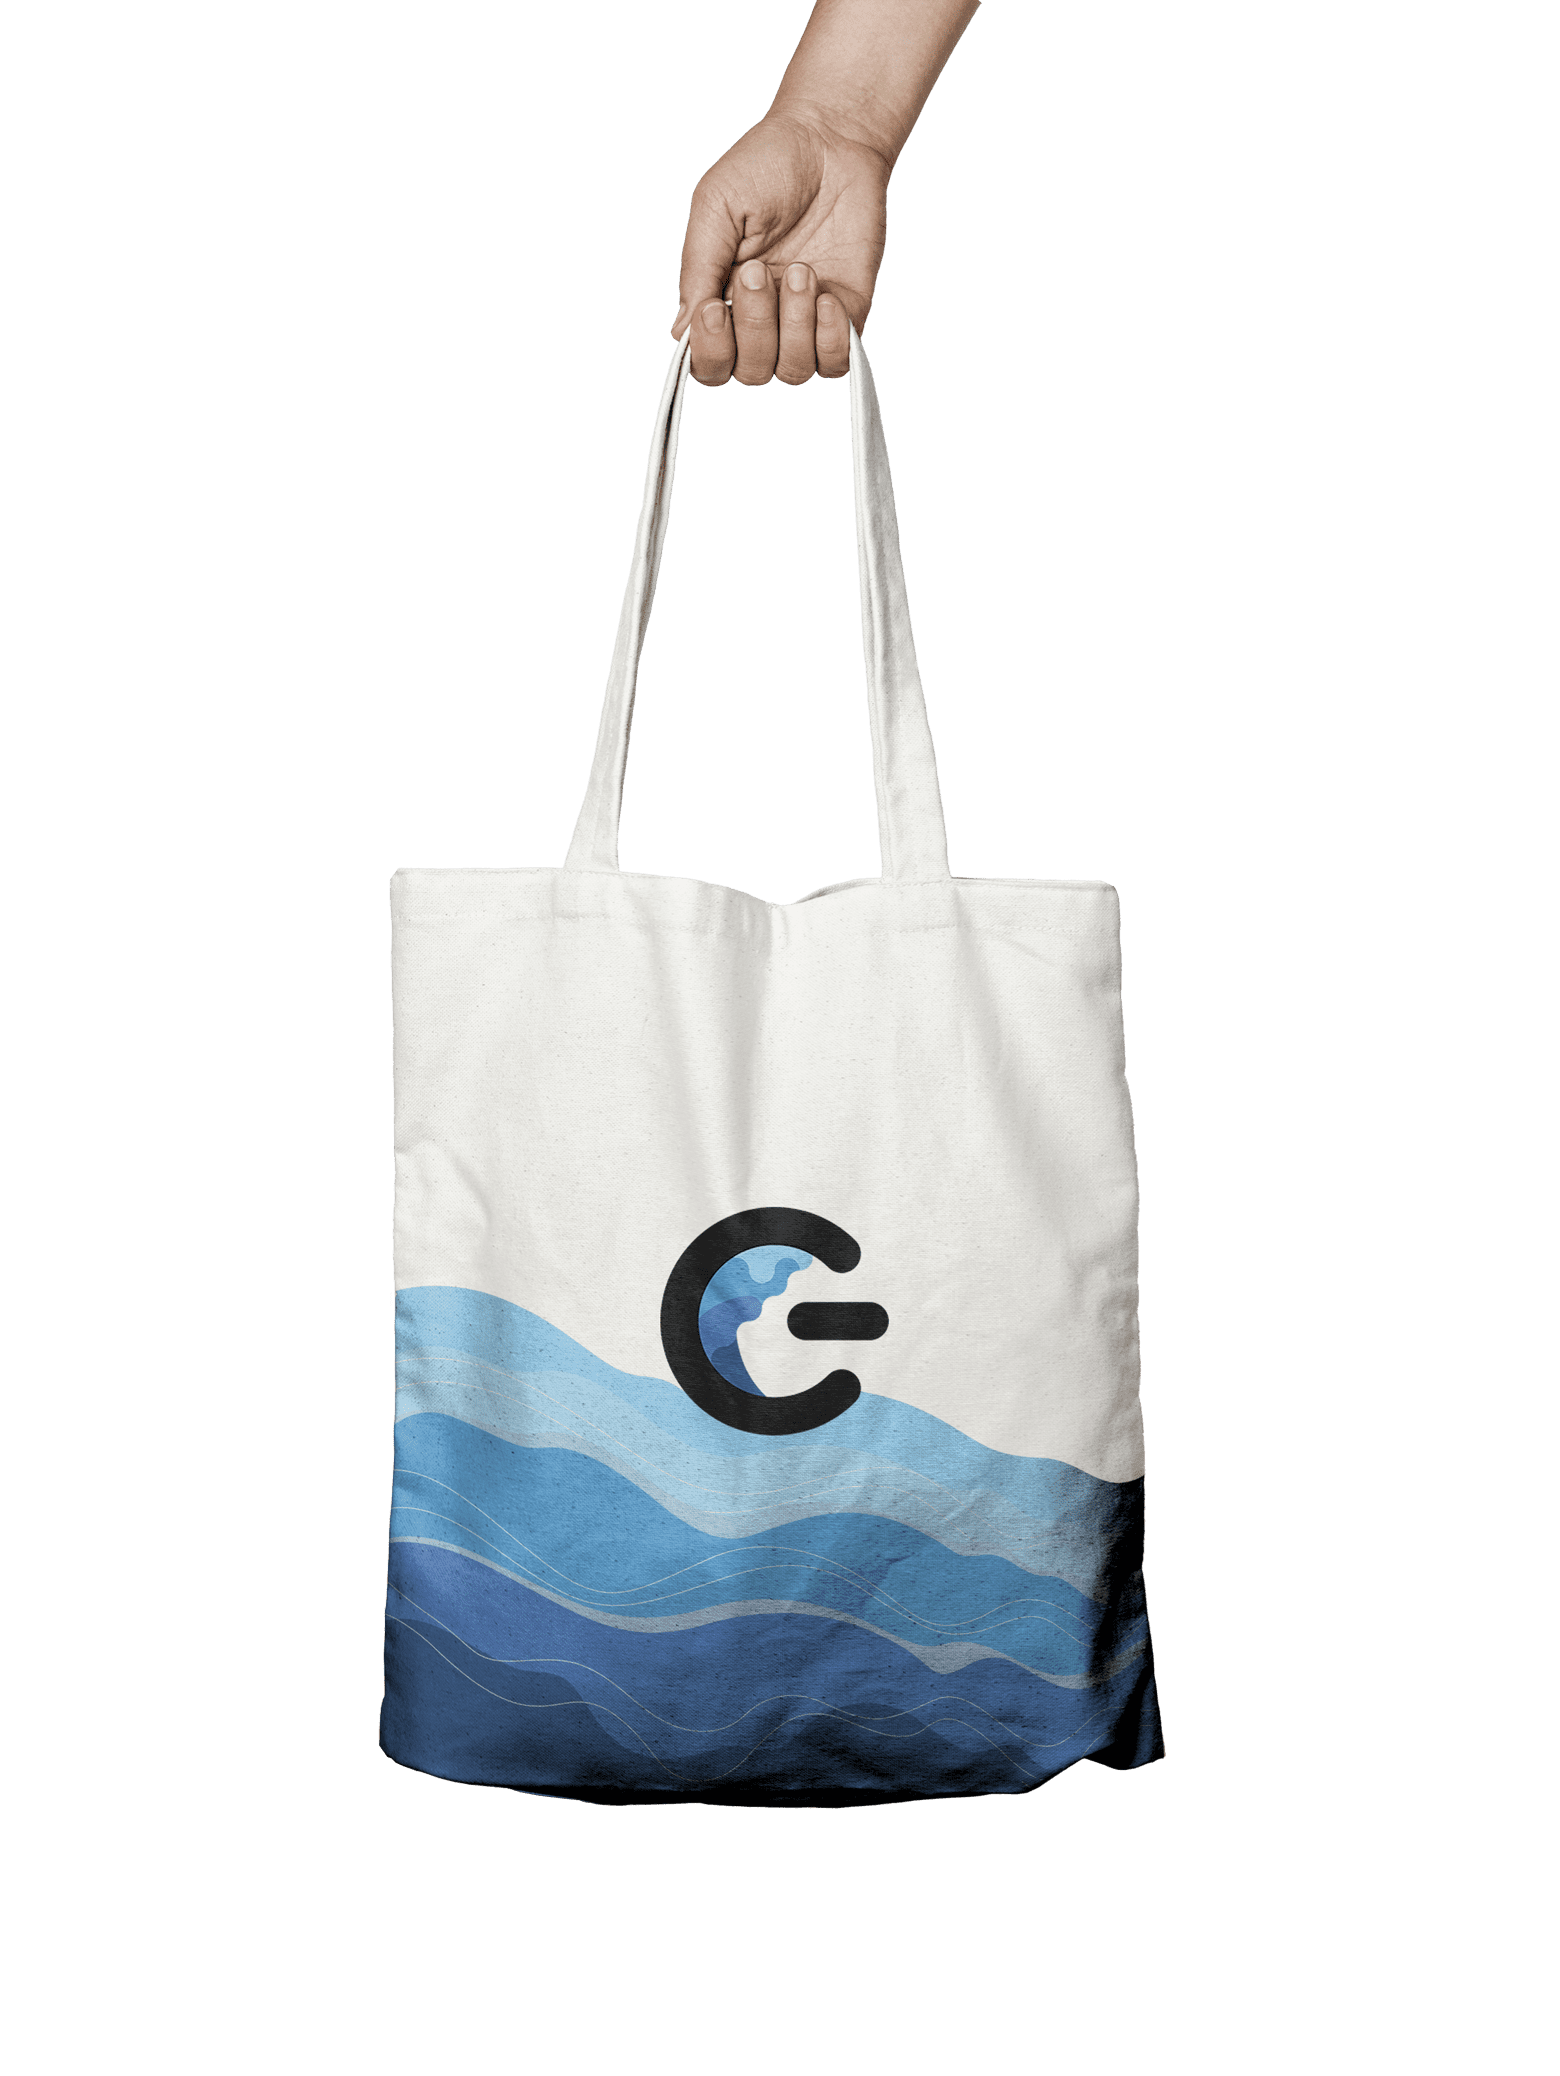 Canvas-Tote-Bag-MockUpZero